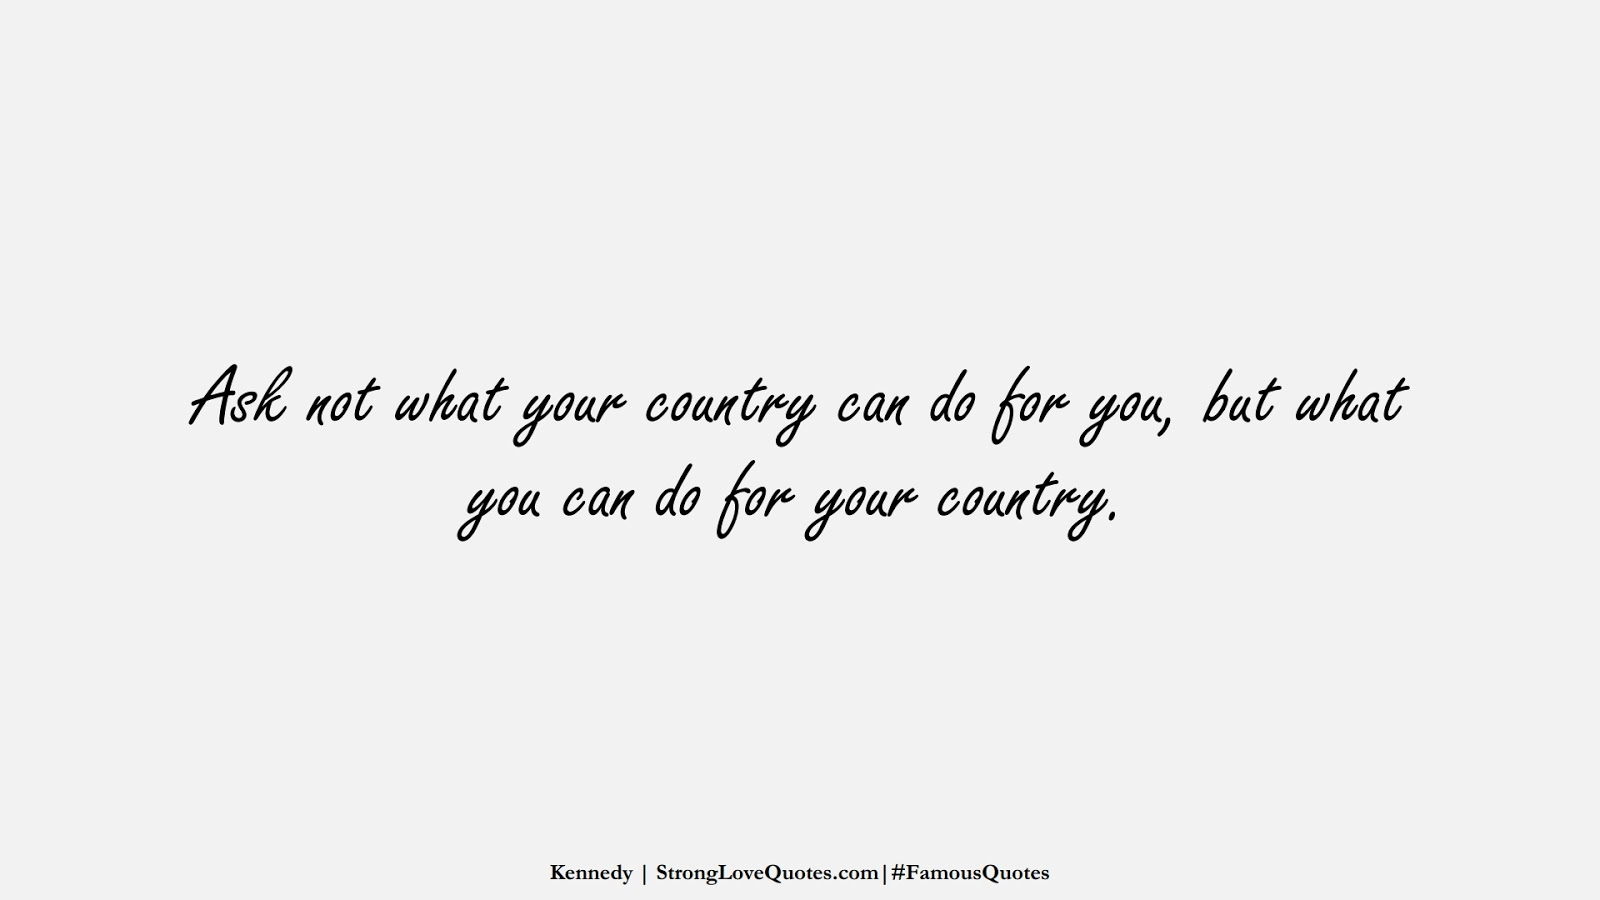 Ask not what your country can do for you, but what you can do for your country. (Kennedy);  #FamousQuotes